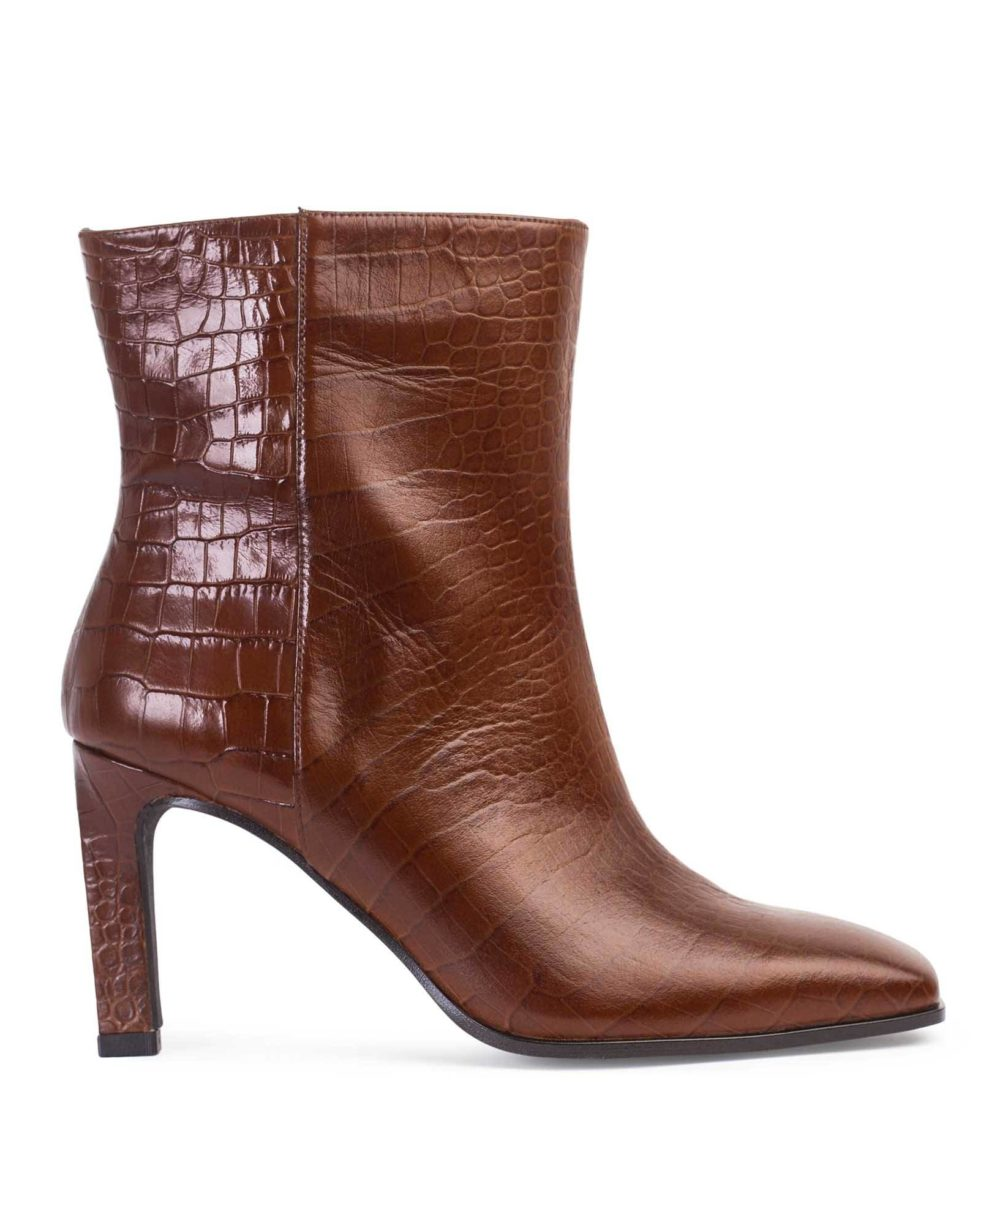 Leather Bootie Paco Gil - P-3888 URSULA/TAUPE CROCO